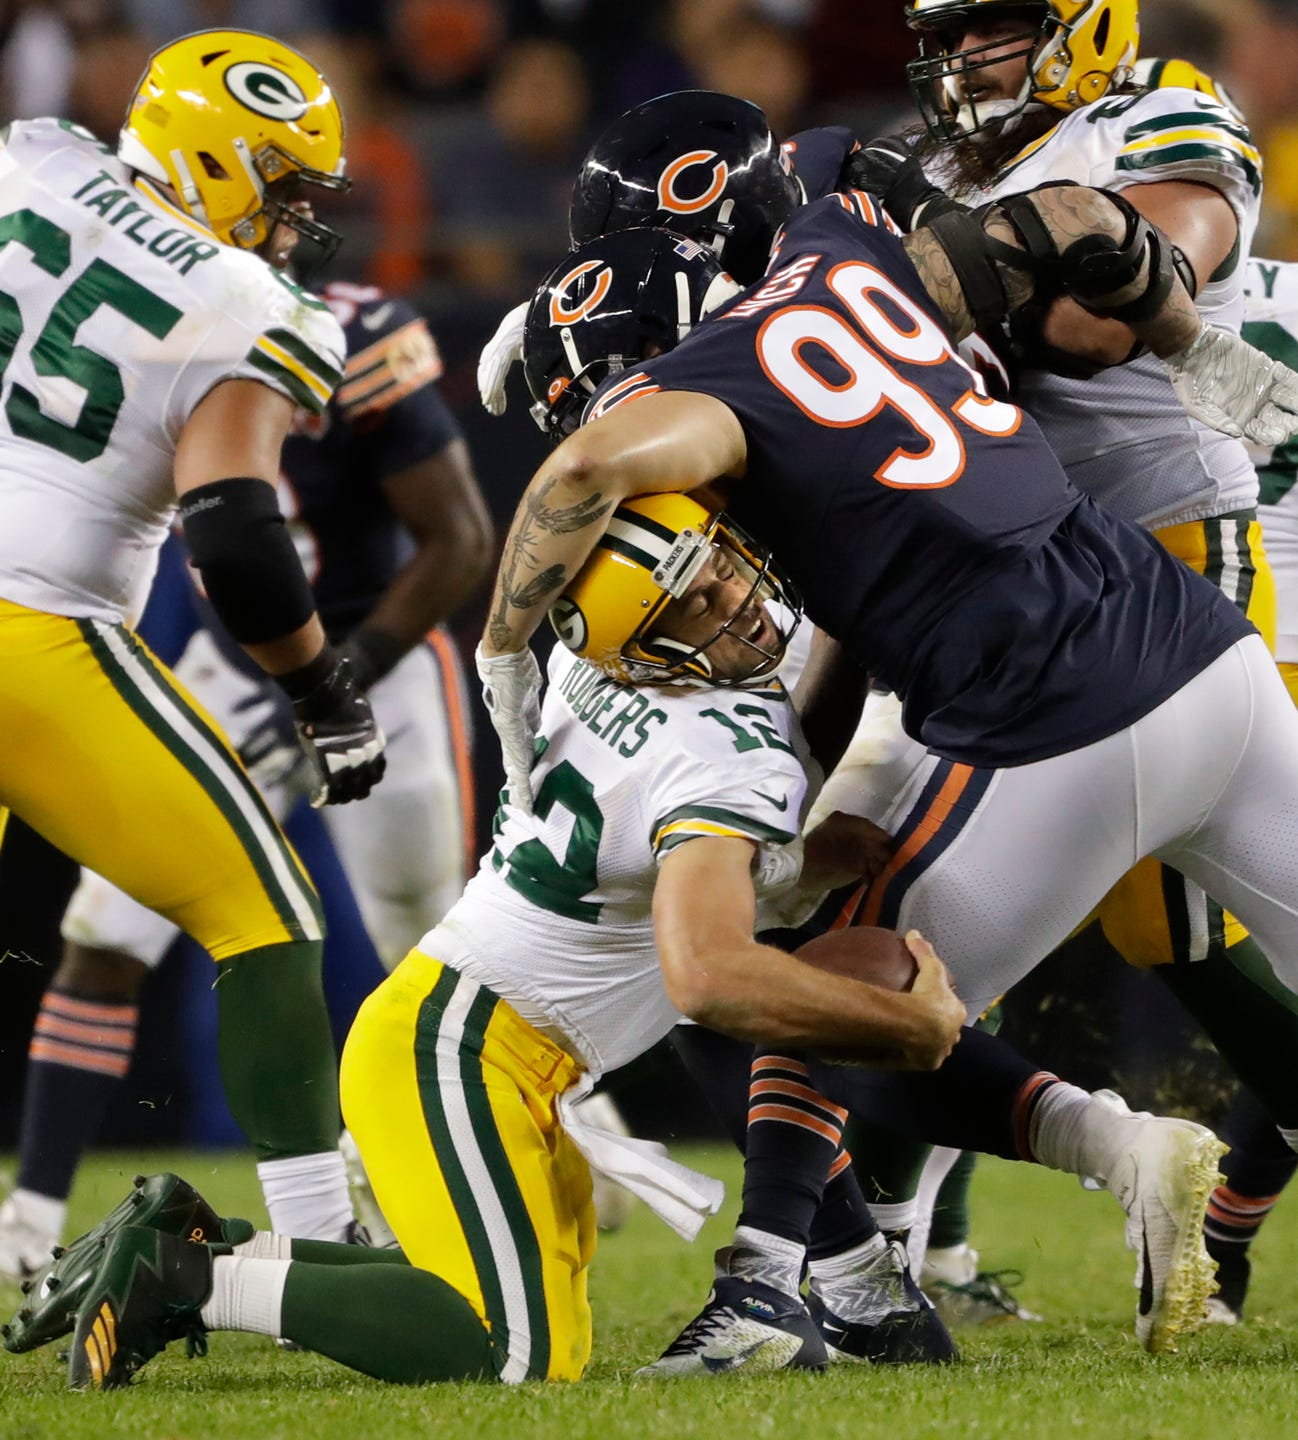 Green Bay Packers quarterback Aaron Rodgers (12) is sacked by Chicago Bears outside linebacker Leonard Floyd (94) and hit by outside linebacker Aaron Lynch (99) in the third quarter Thursday, September 5, 2019, at Soldier Field in Chicago, Ill.  Dan Powers/USA TODAY NETWORK-Wisconsin